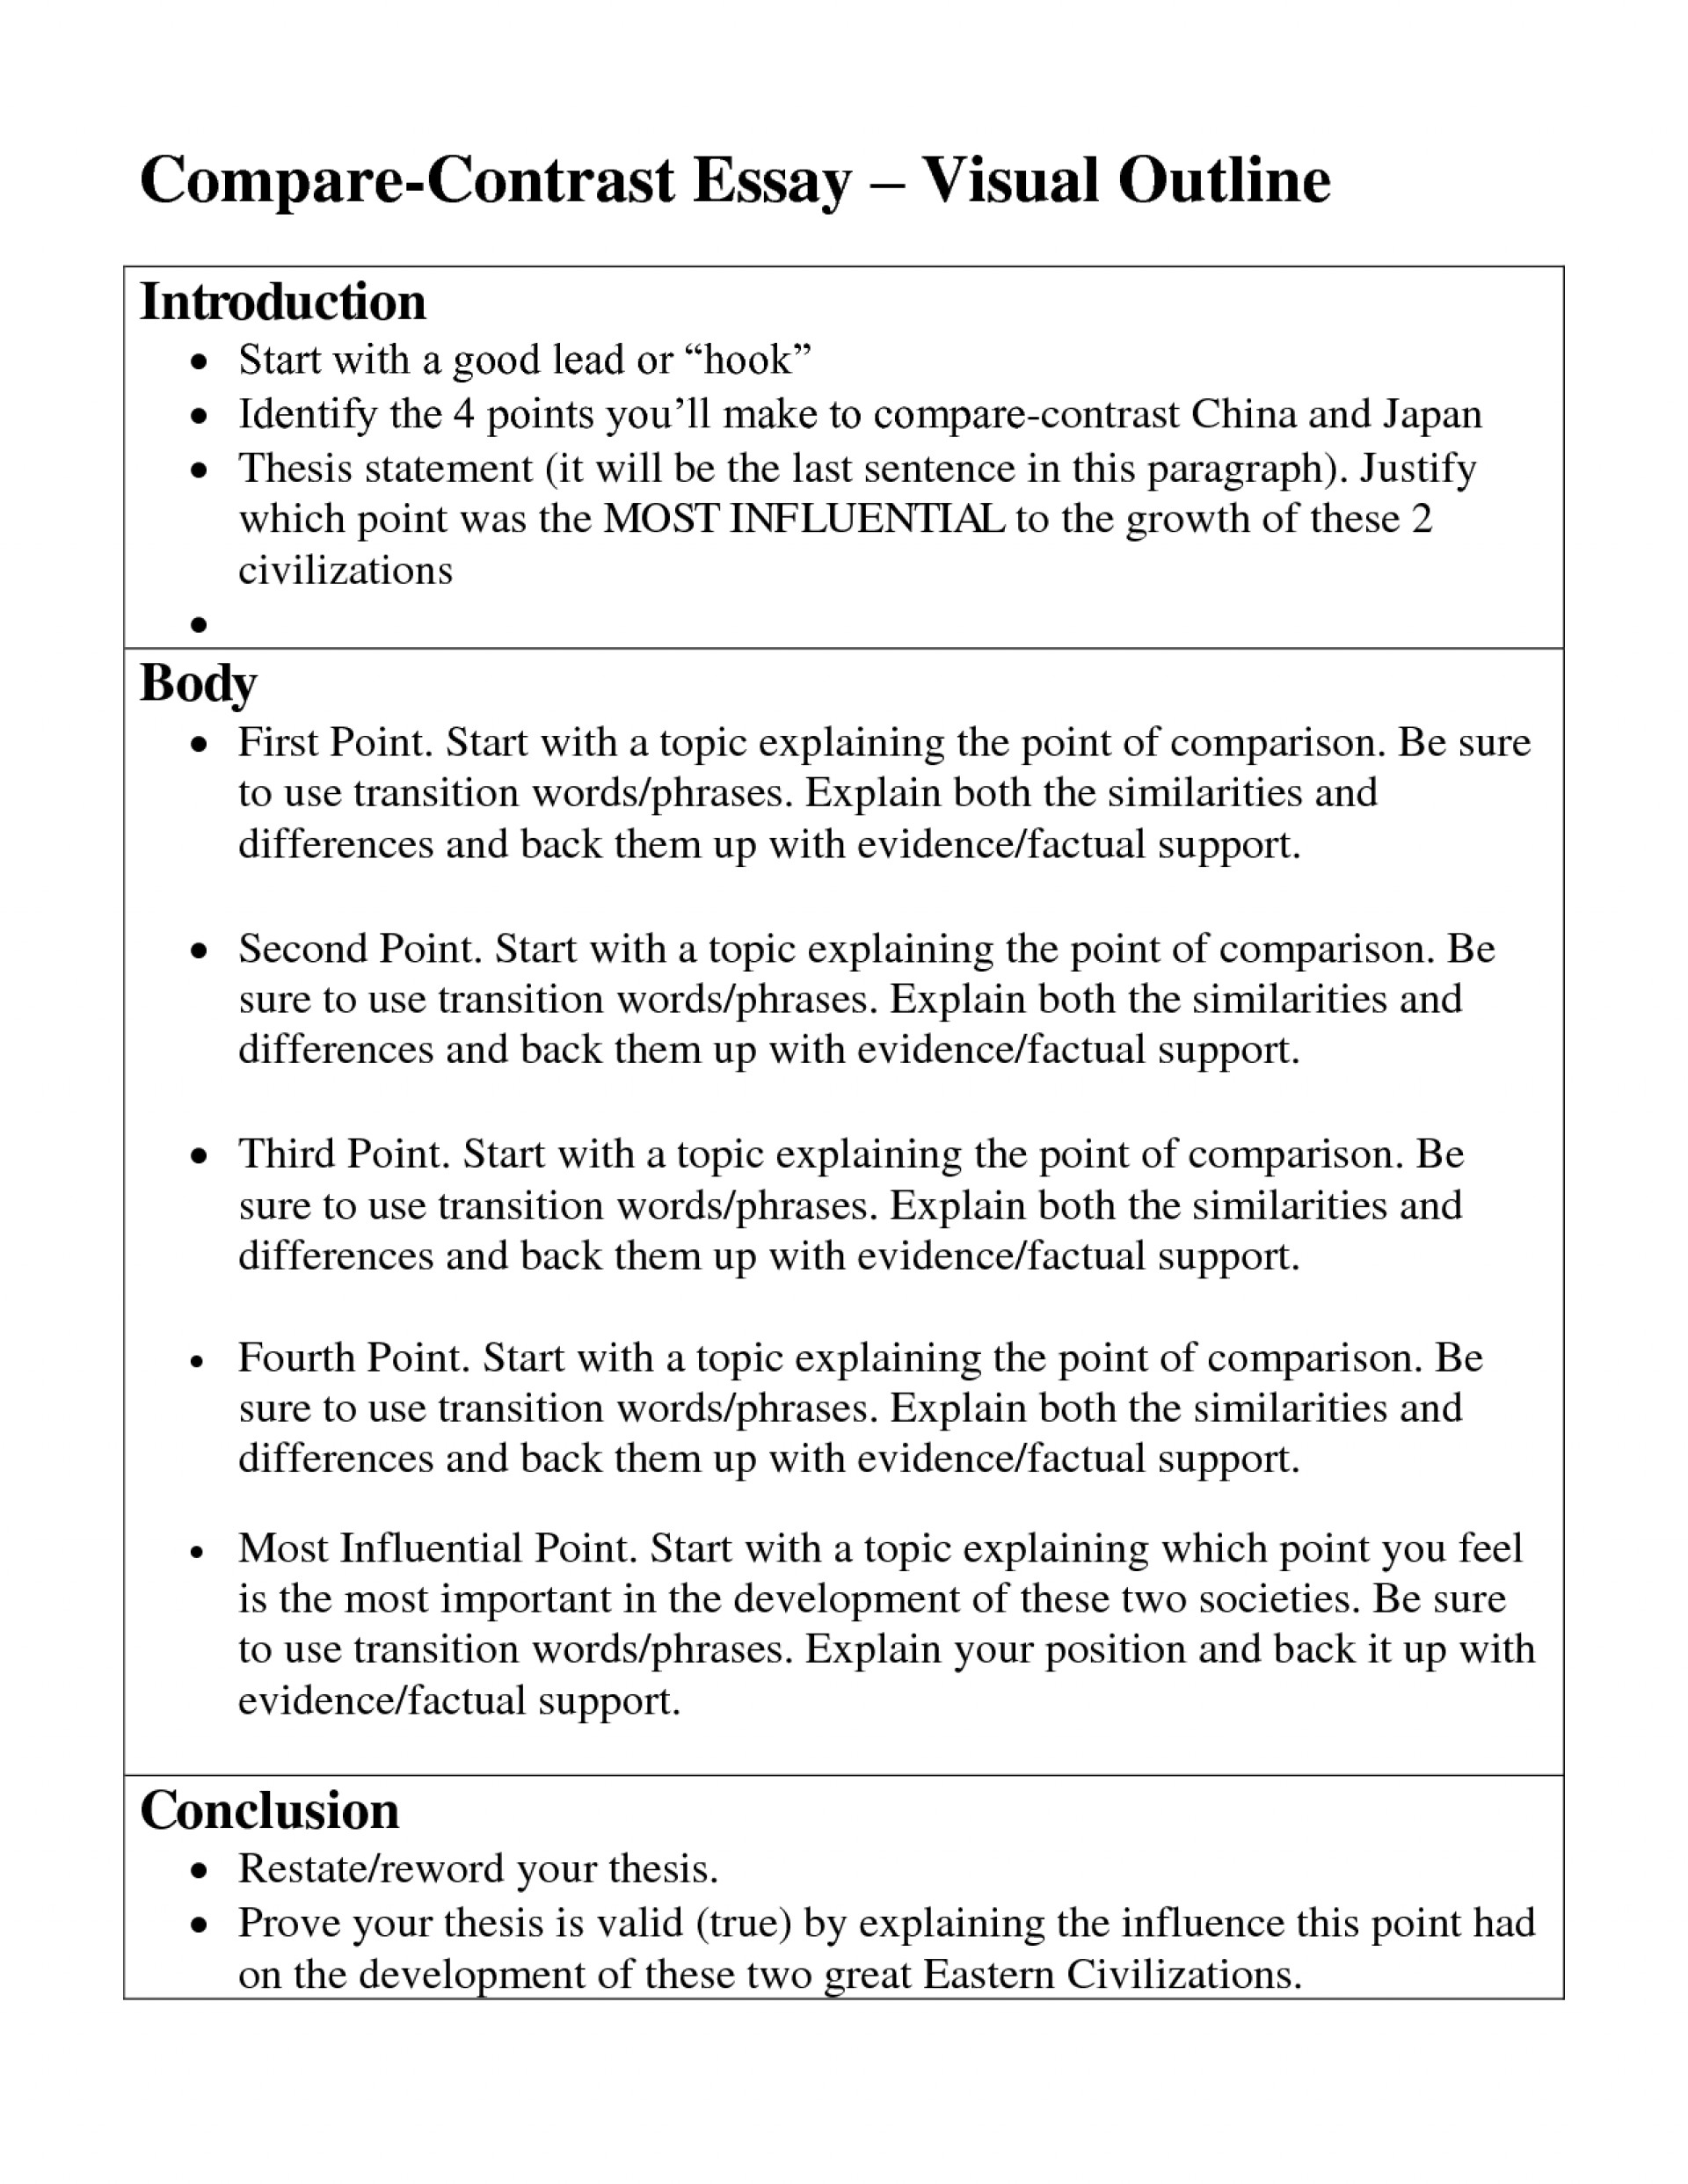 007 Compare And Contrast Essay Format Rare Writing 3rd Grade Sample High School Pdf 1920